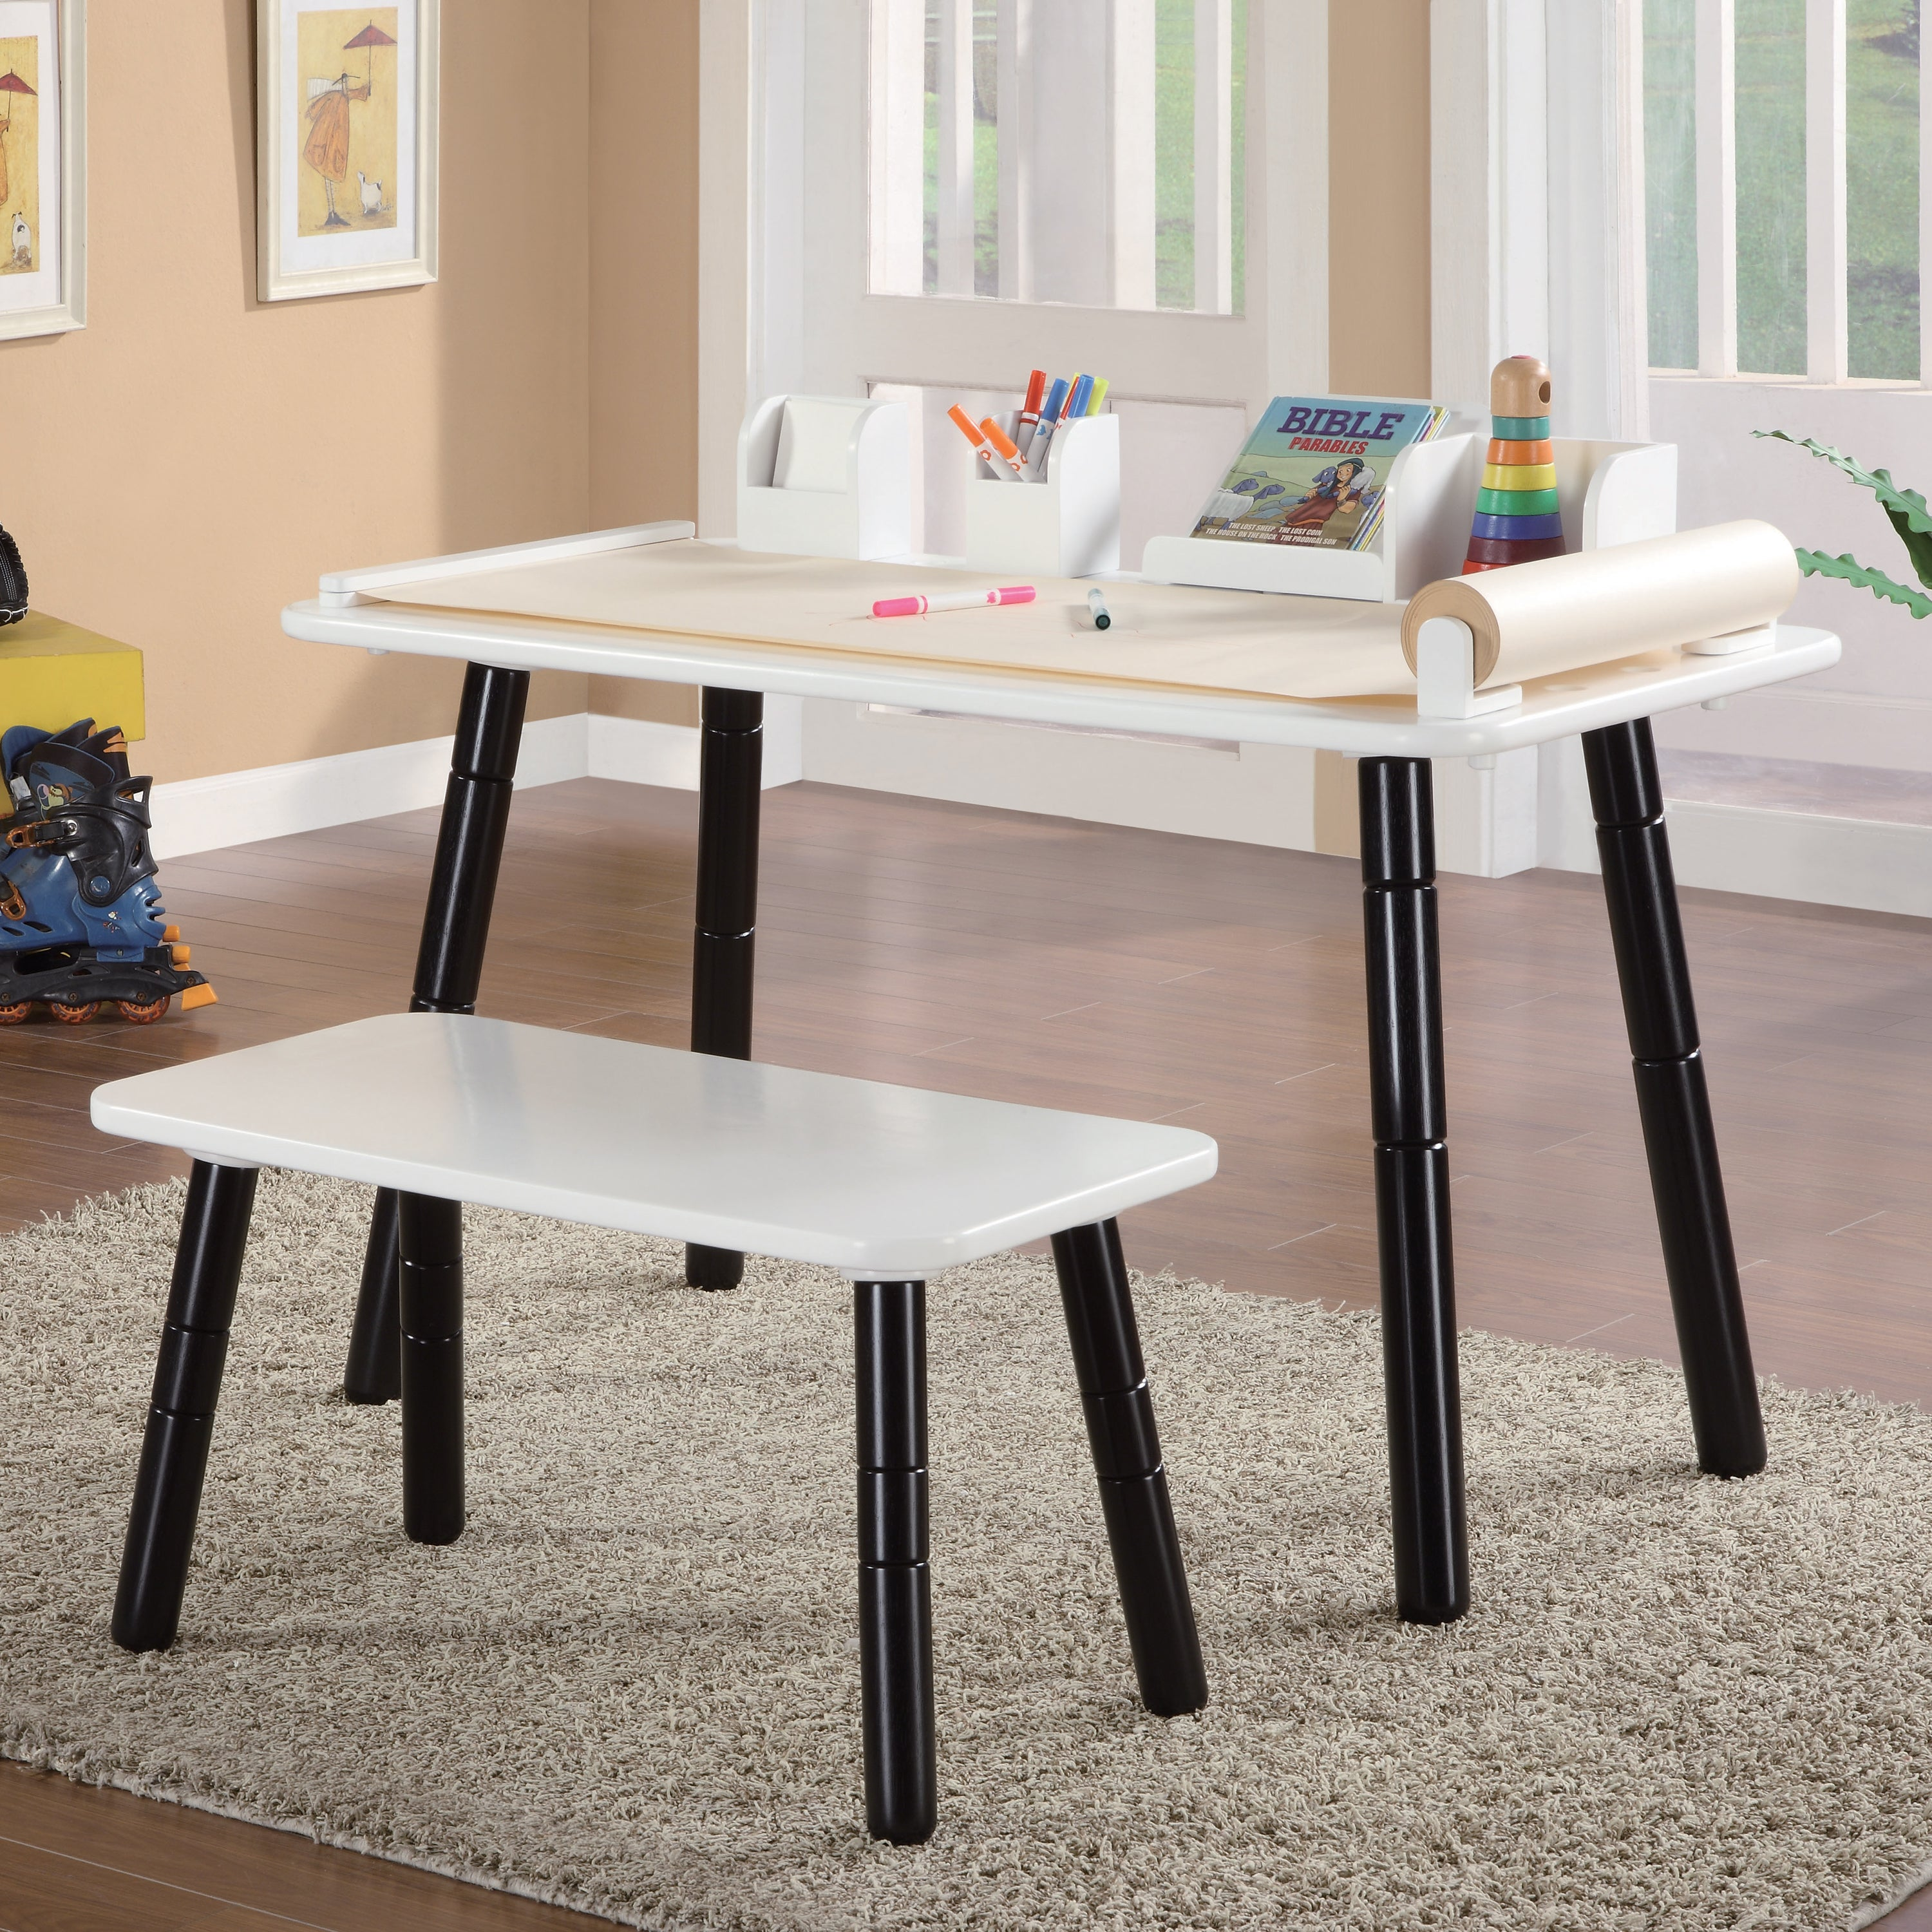 3 Stages Kid's Art Table and Bench Set in White and Black Finish